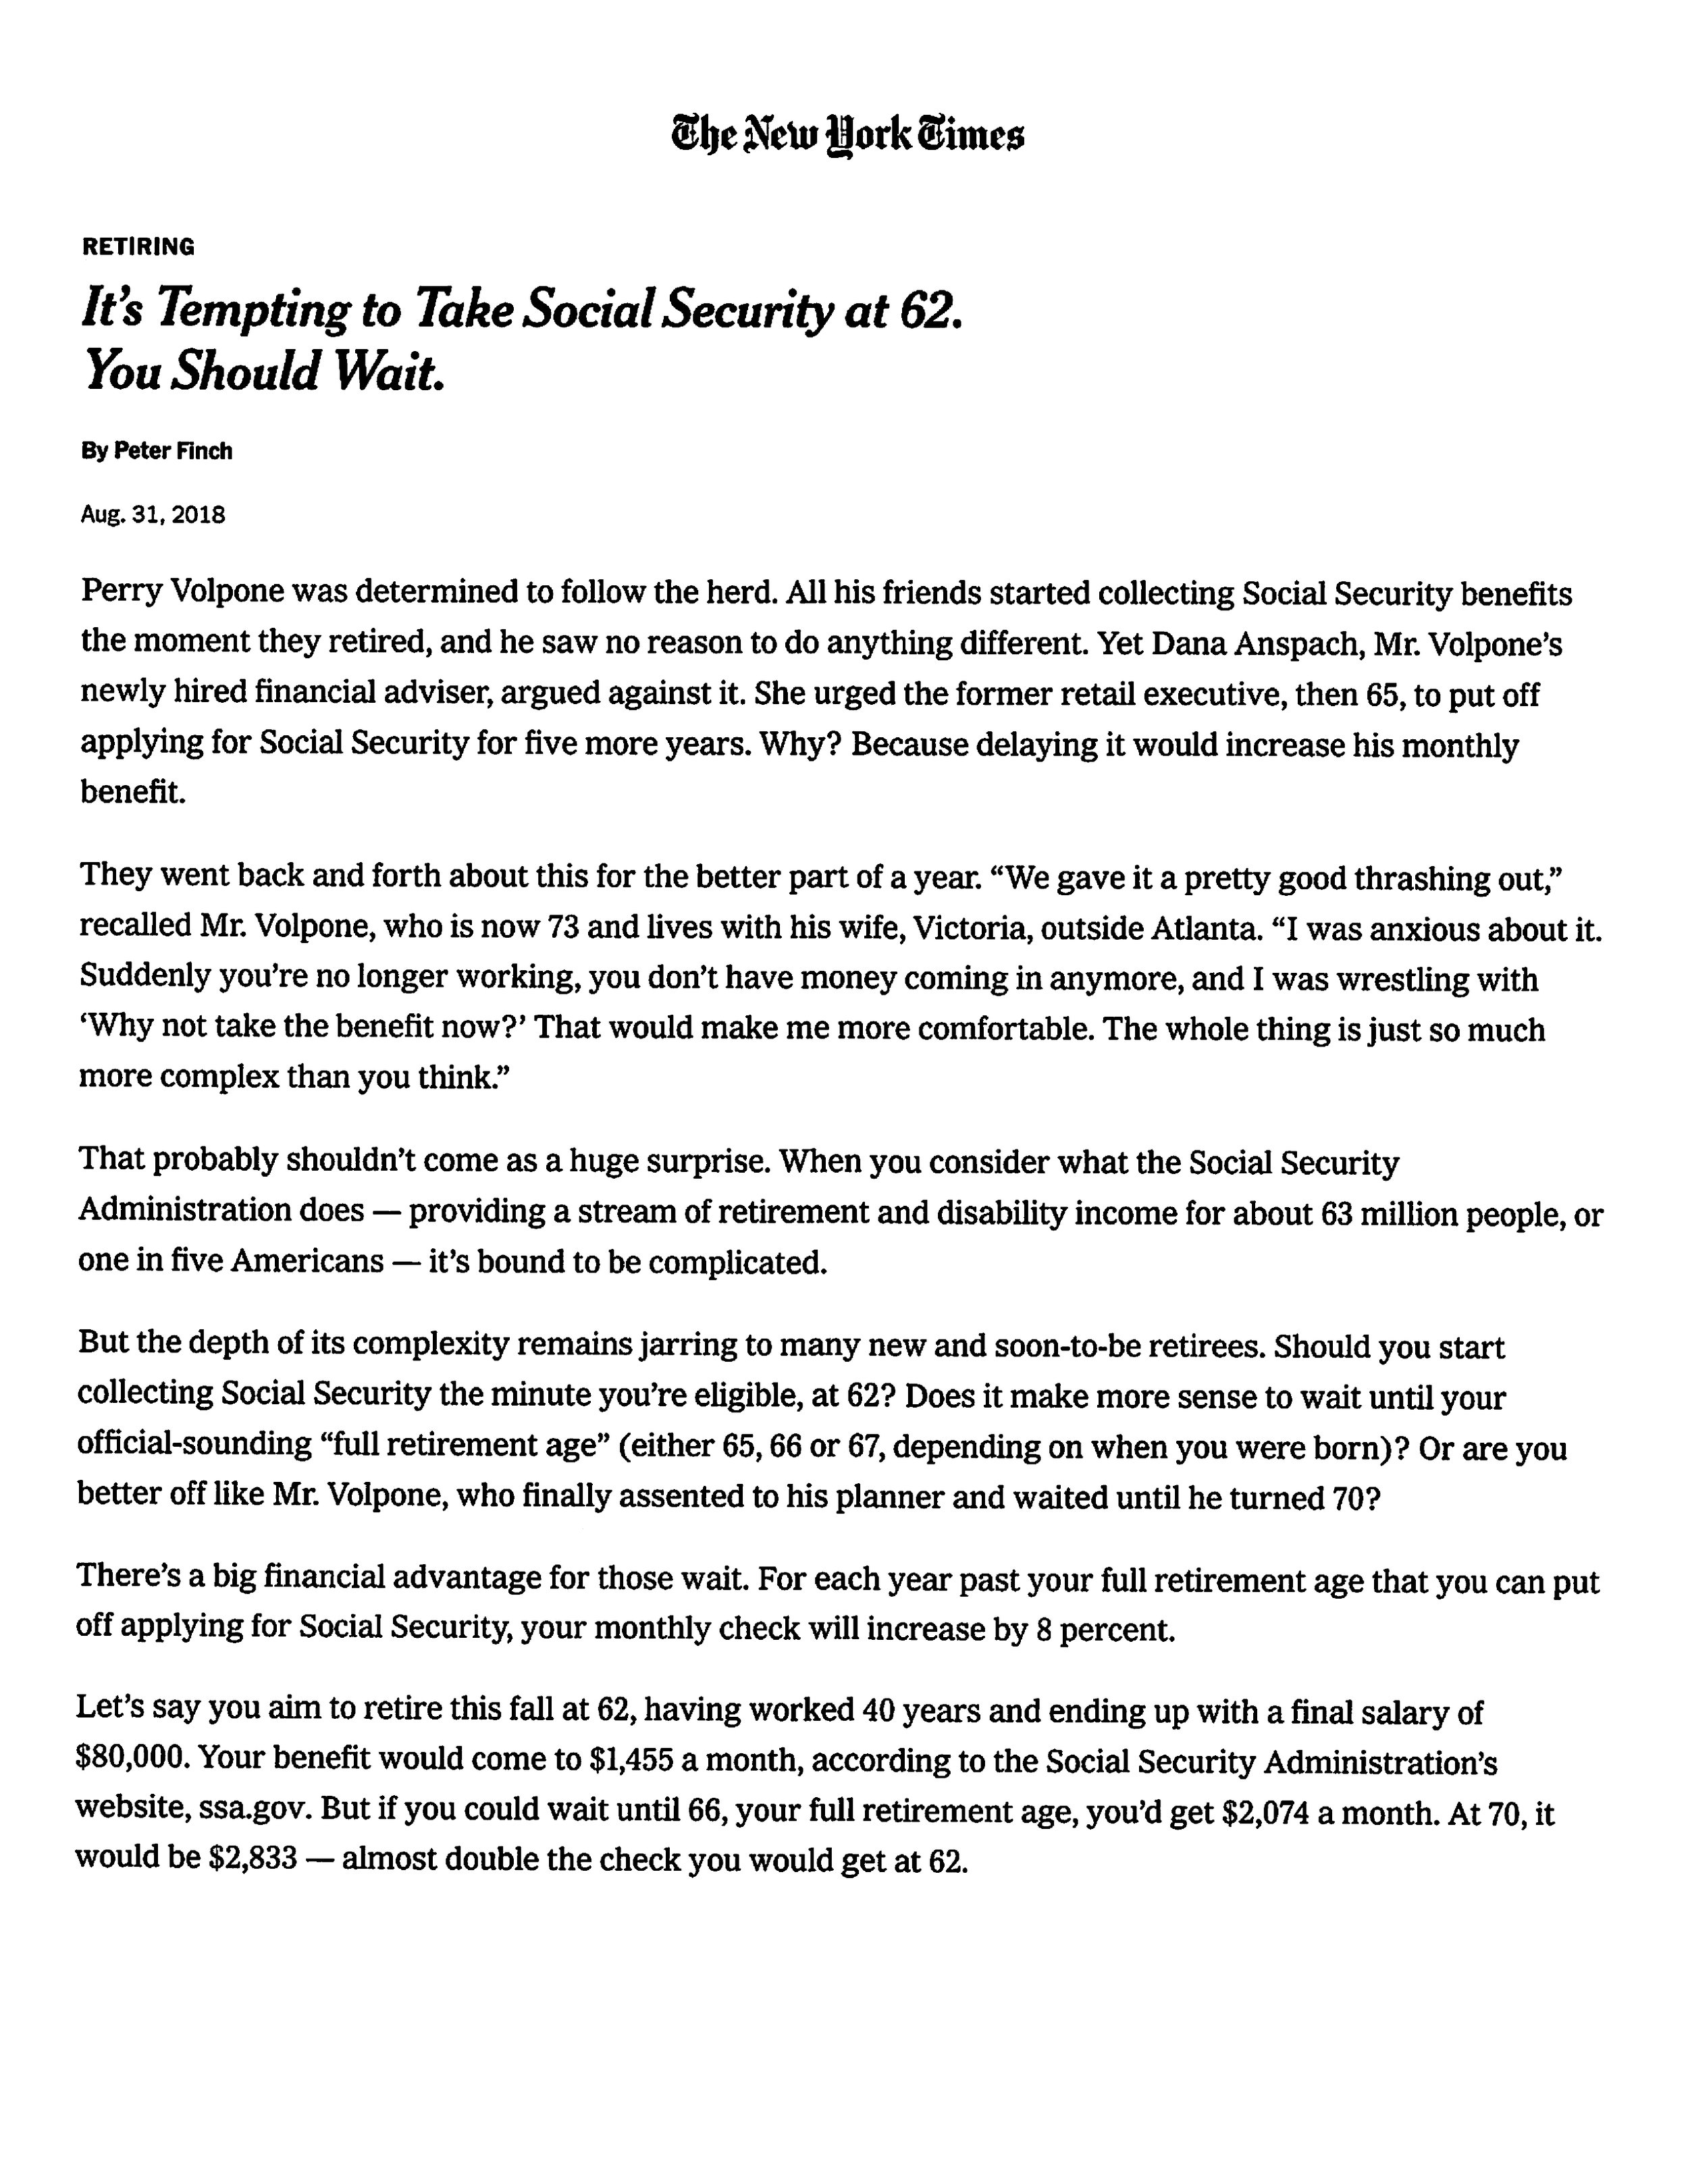 Social Security at 62-1.jpg